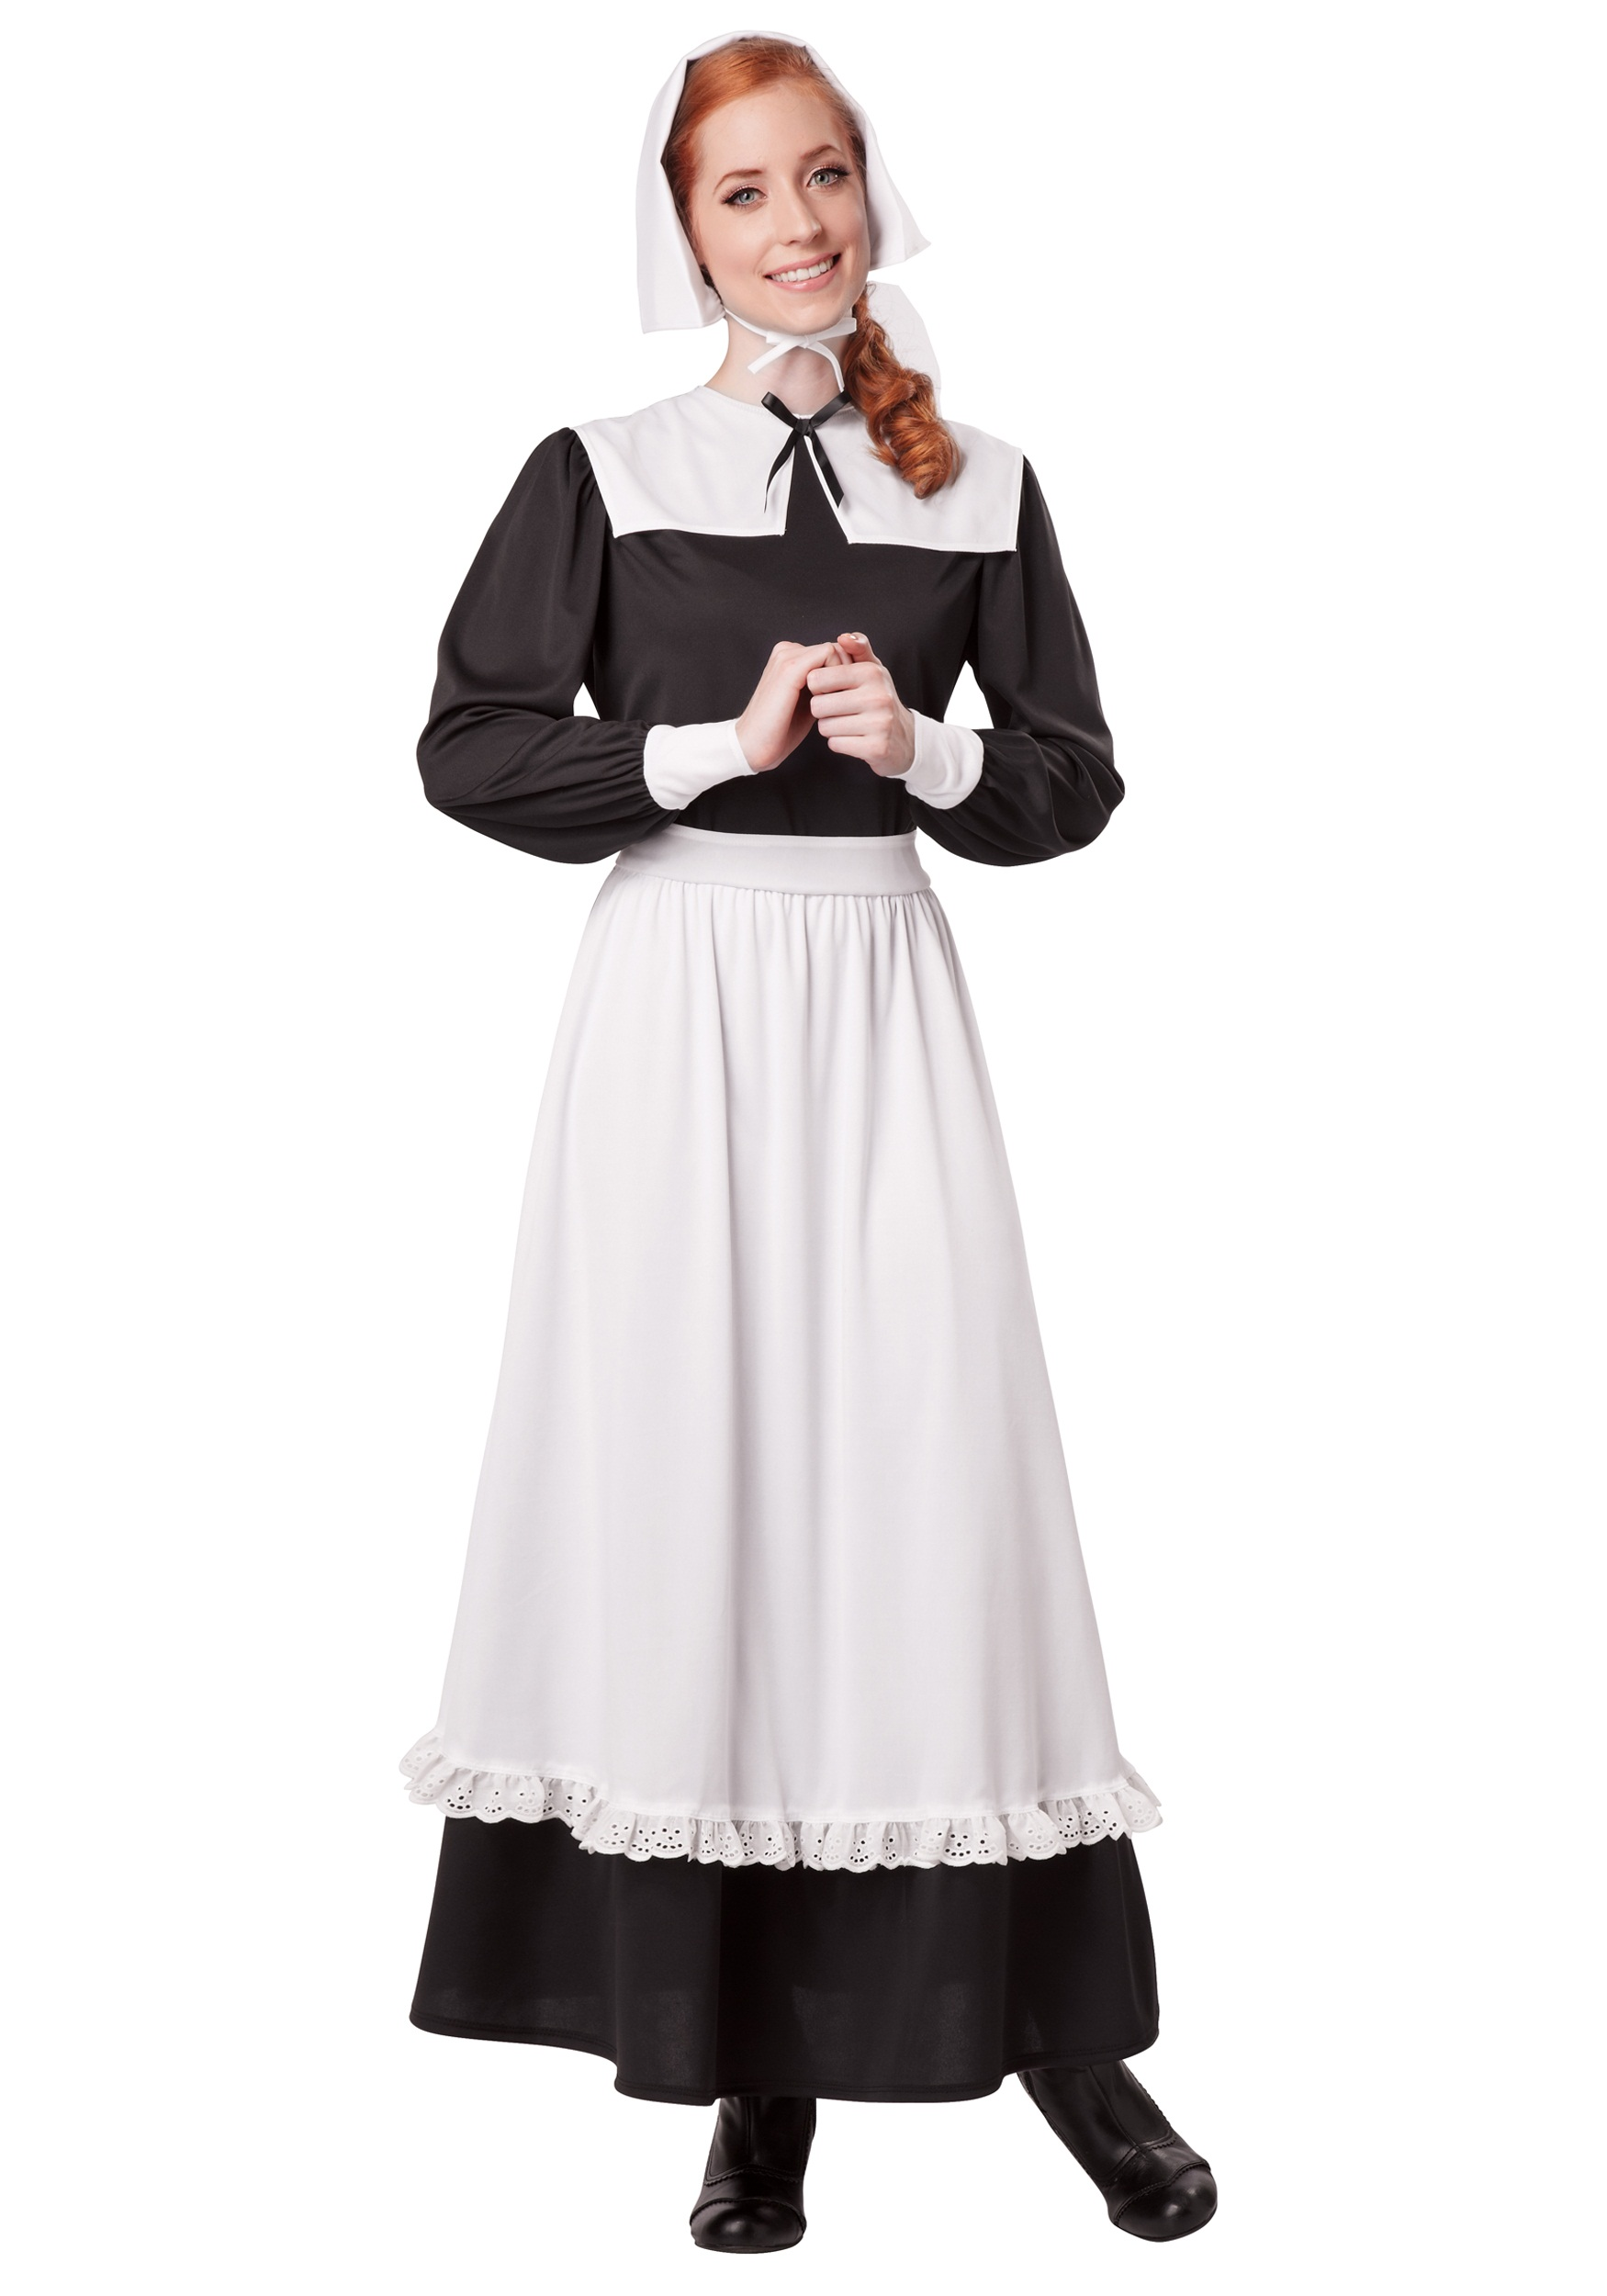 the roles of puritan and colonial women This lesson focuses on women's roles in the colonies to study and interpret the role of women in colonial though it did occur more in the puritan colonies.